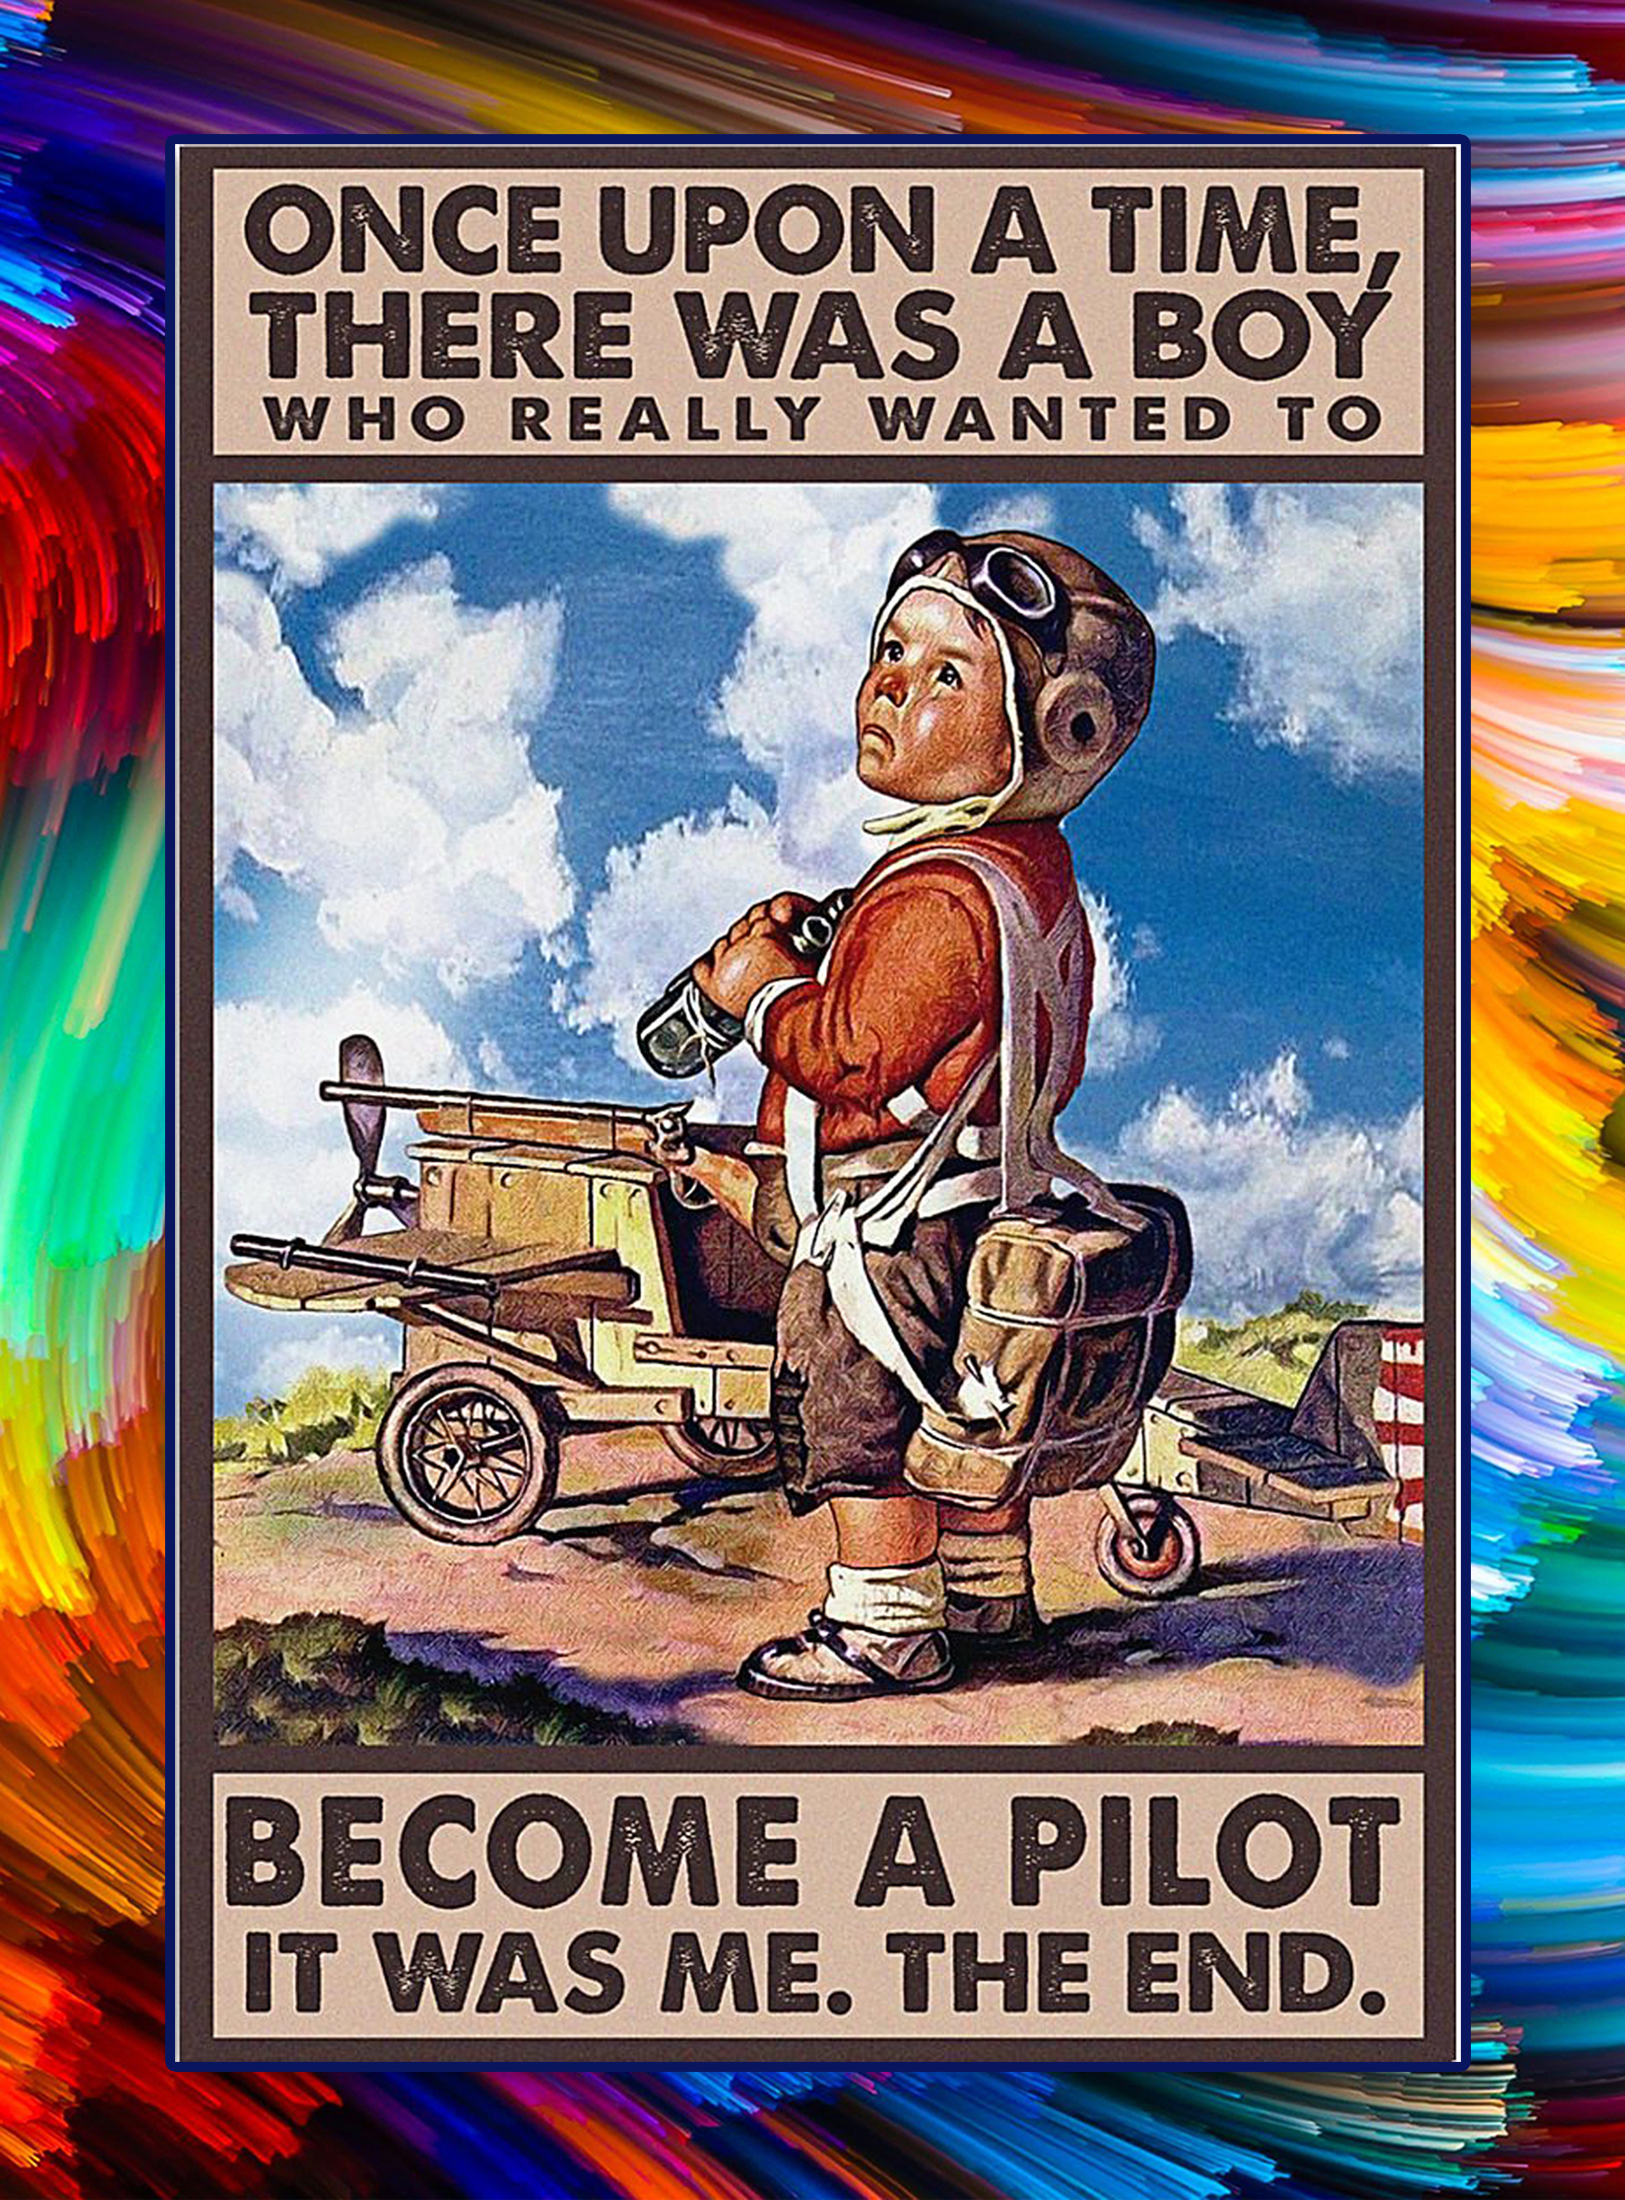 There was a boy who really wanted to become a pilot poster - A2